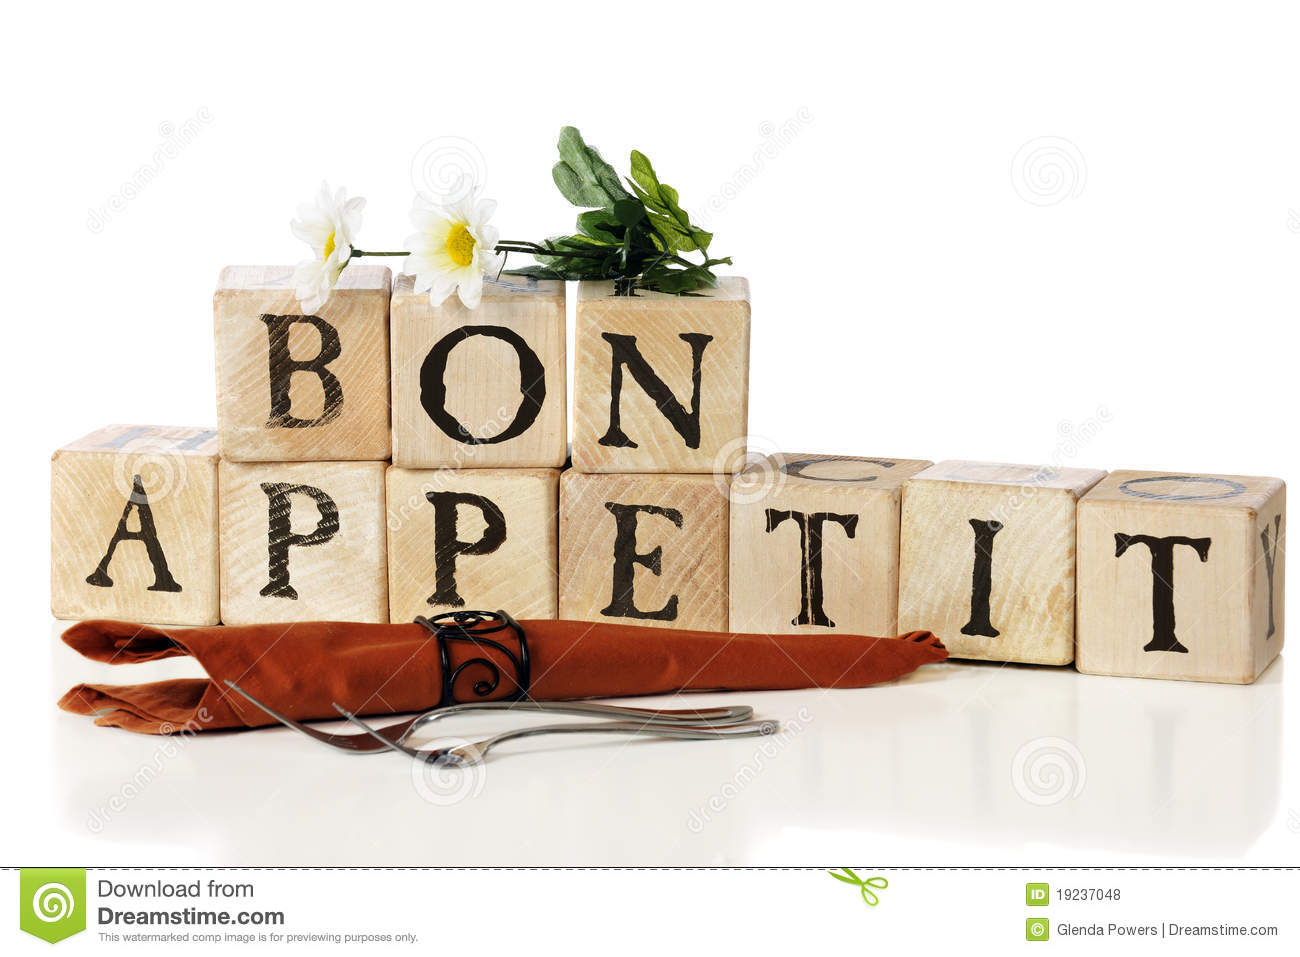 ... Appetit, spelled out with rustic alphabet blocks. Isolated on white